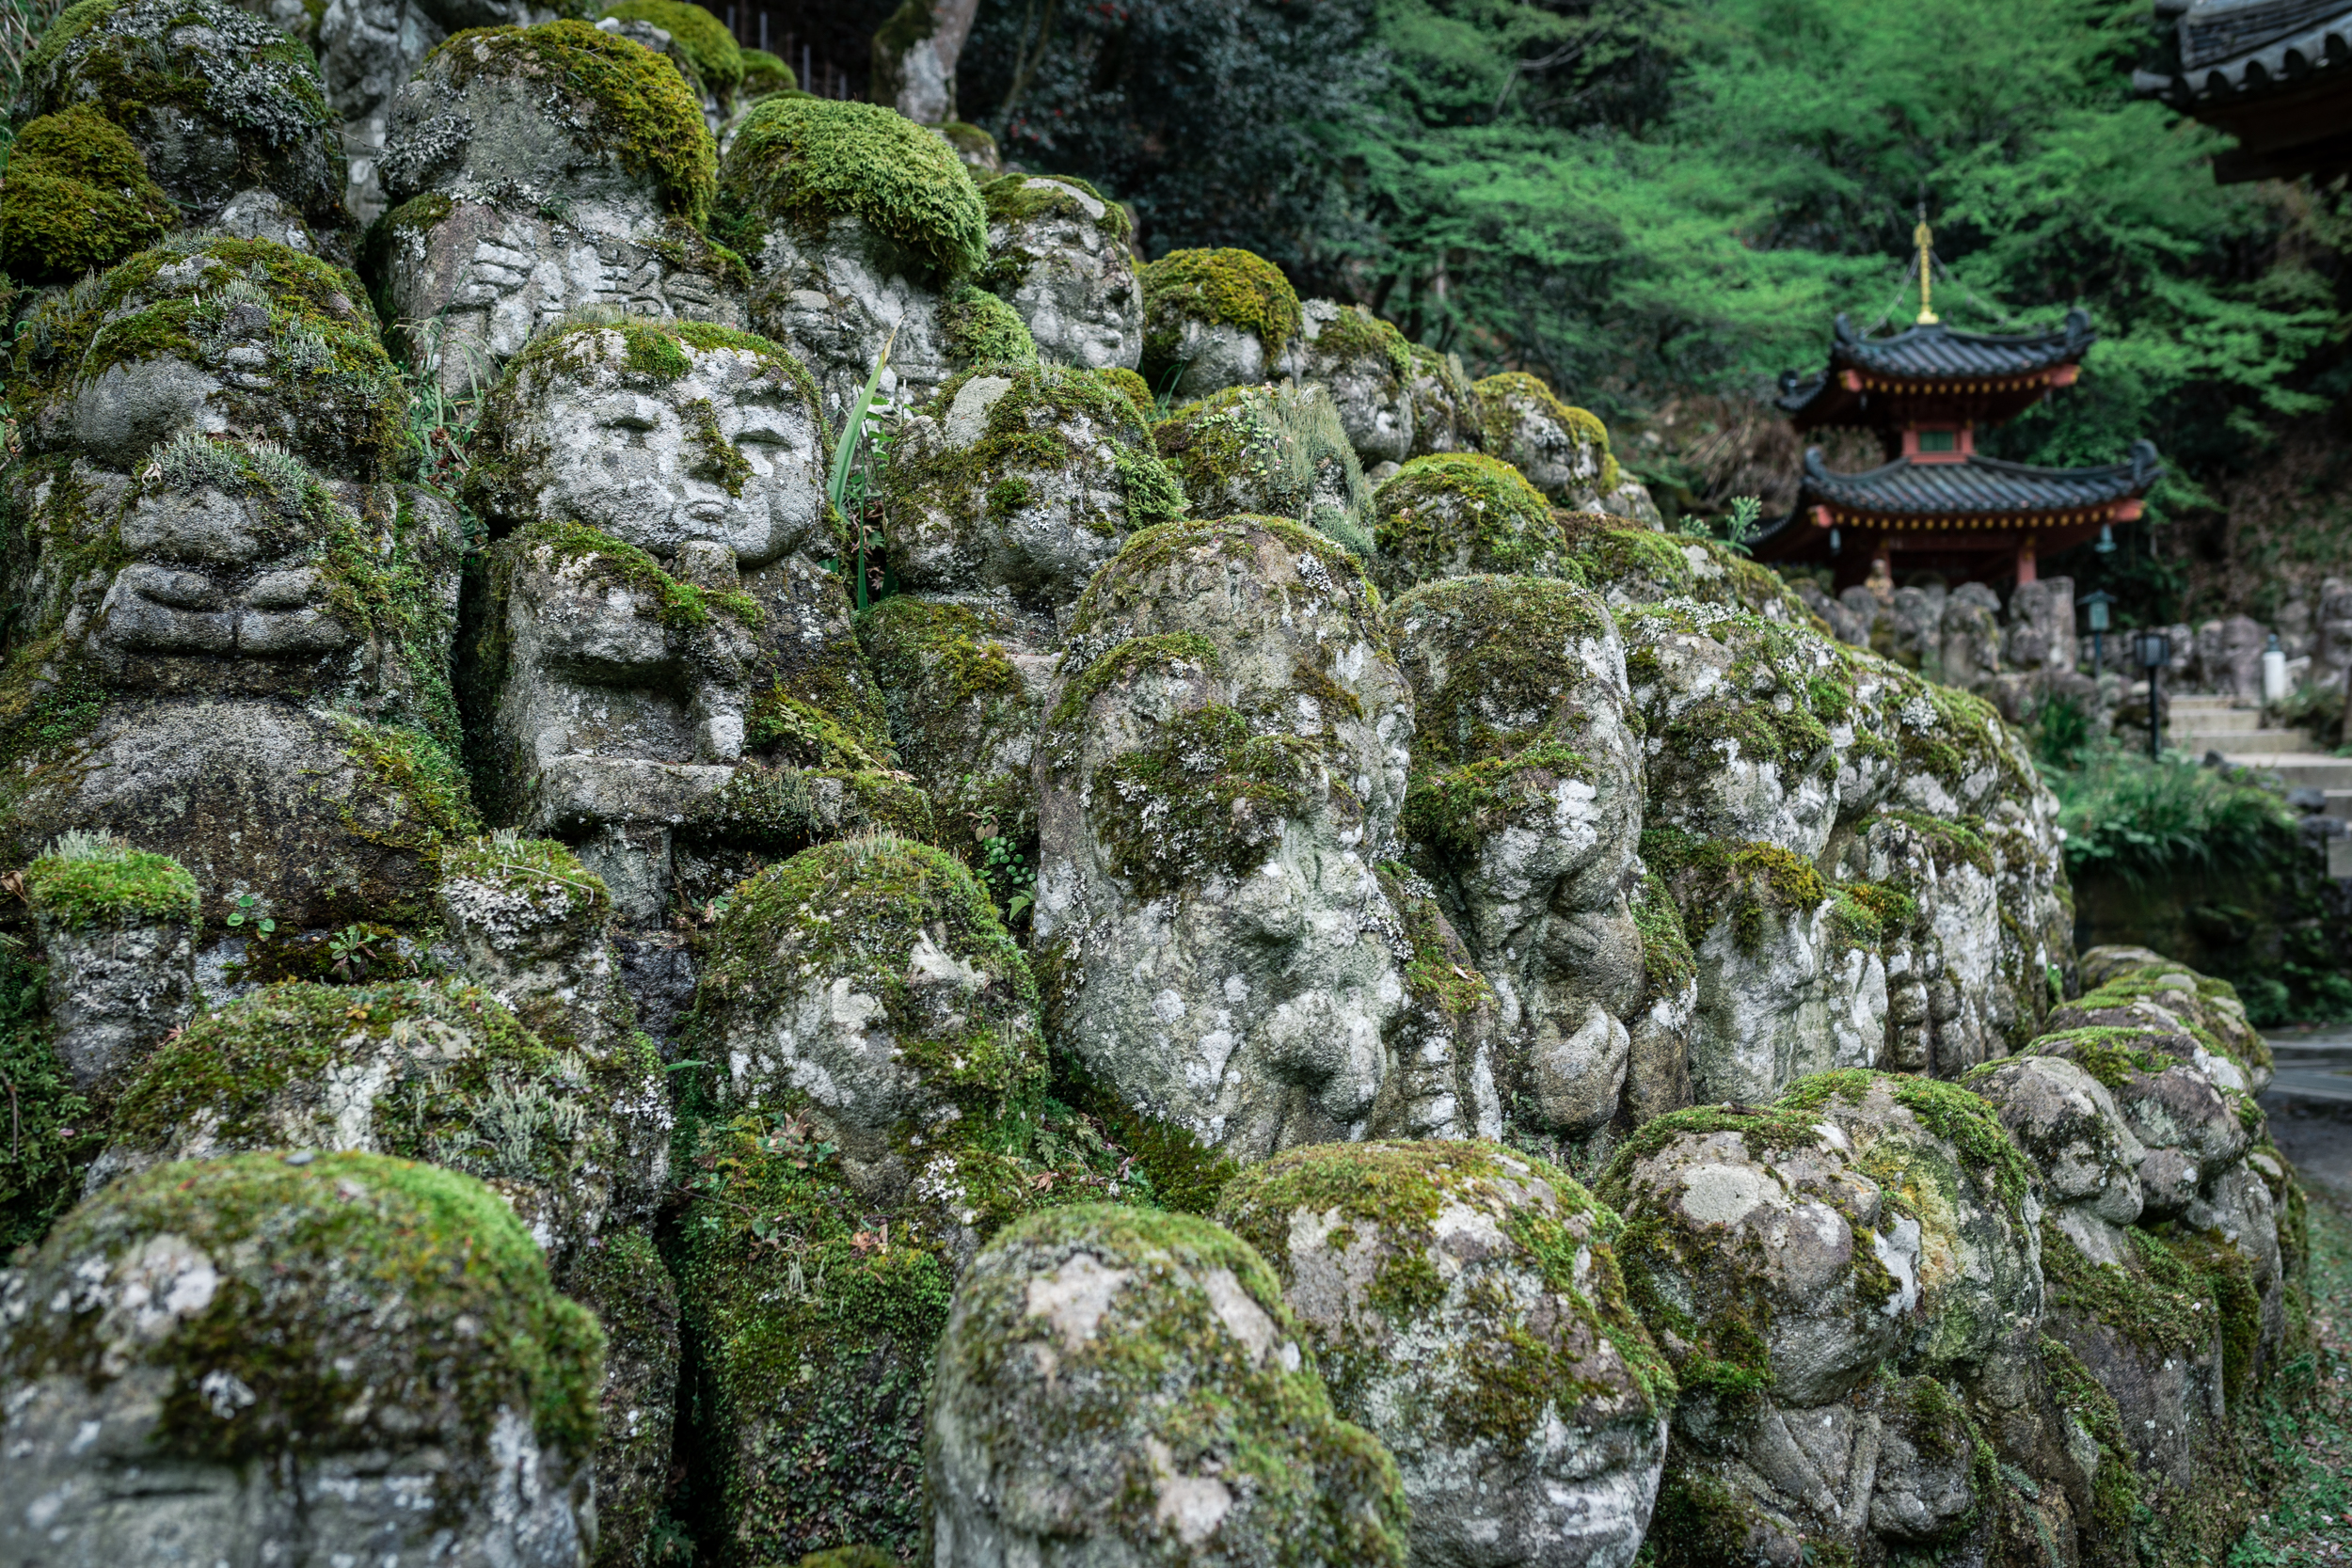 Walls of moss-covered statues stretch between the temples.